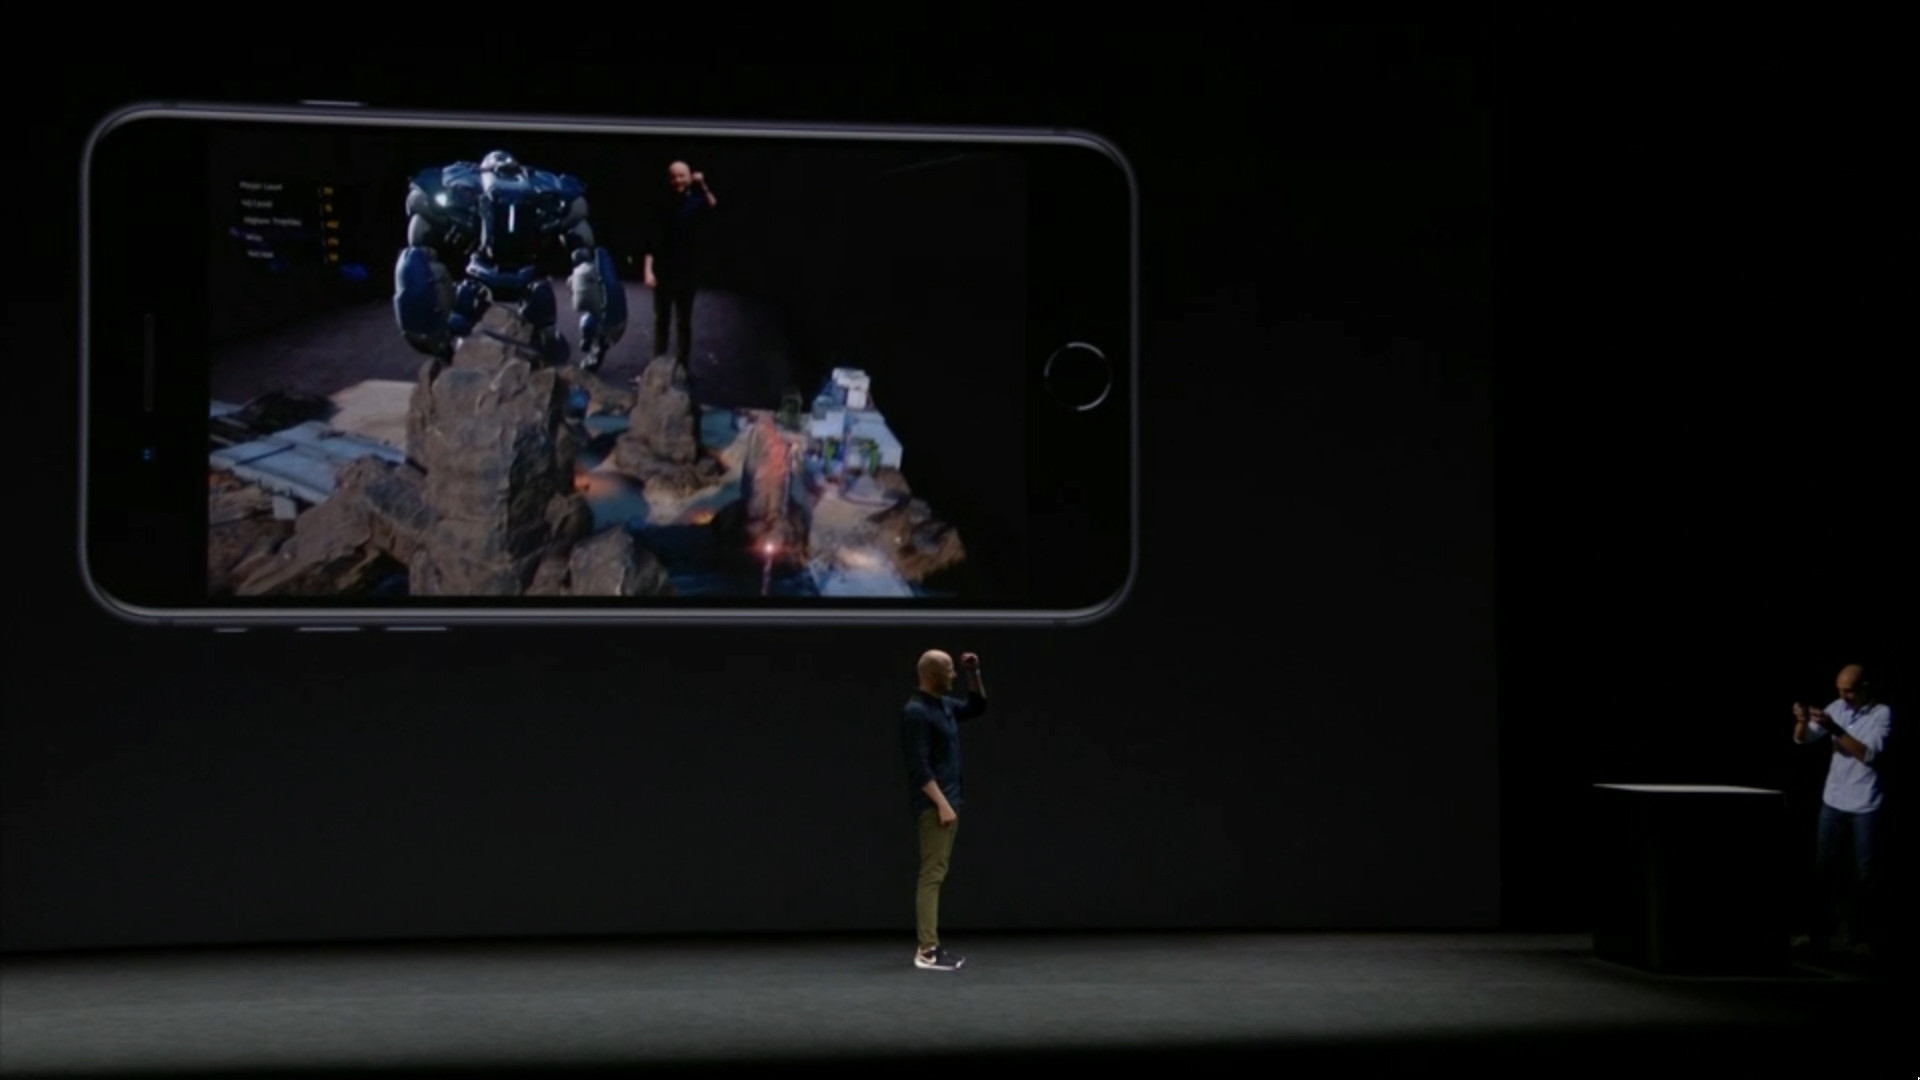 apple shows off breathtaking new augmented reality demos on iphone